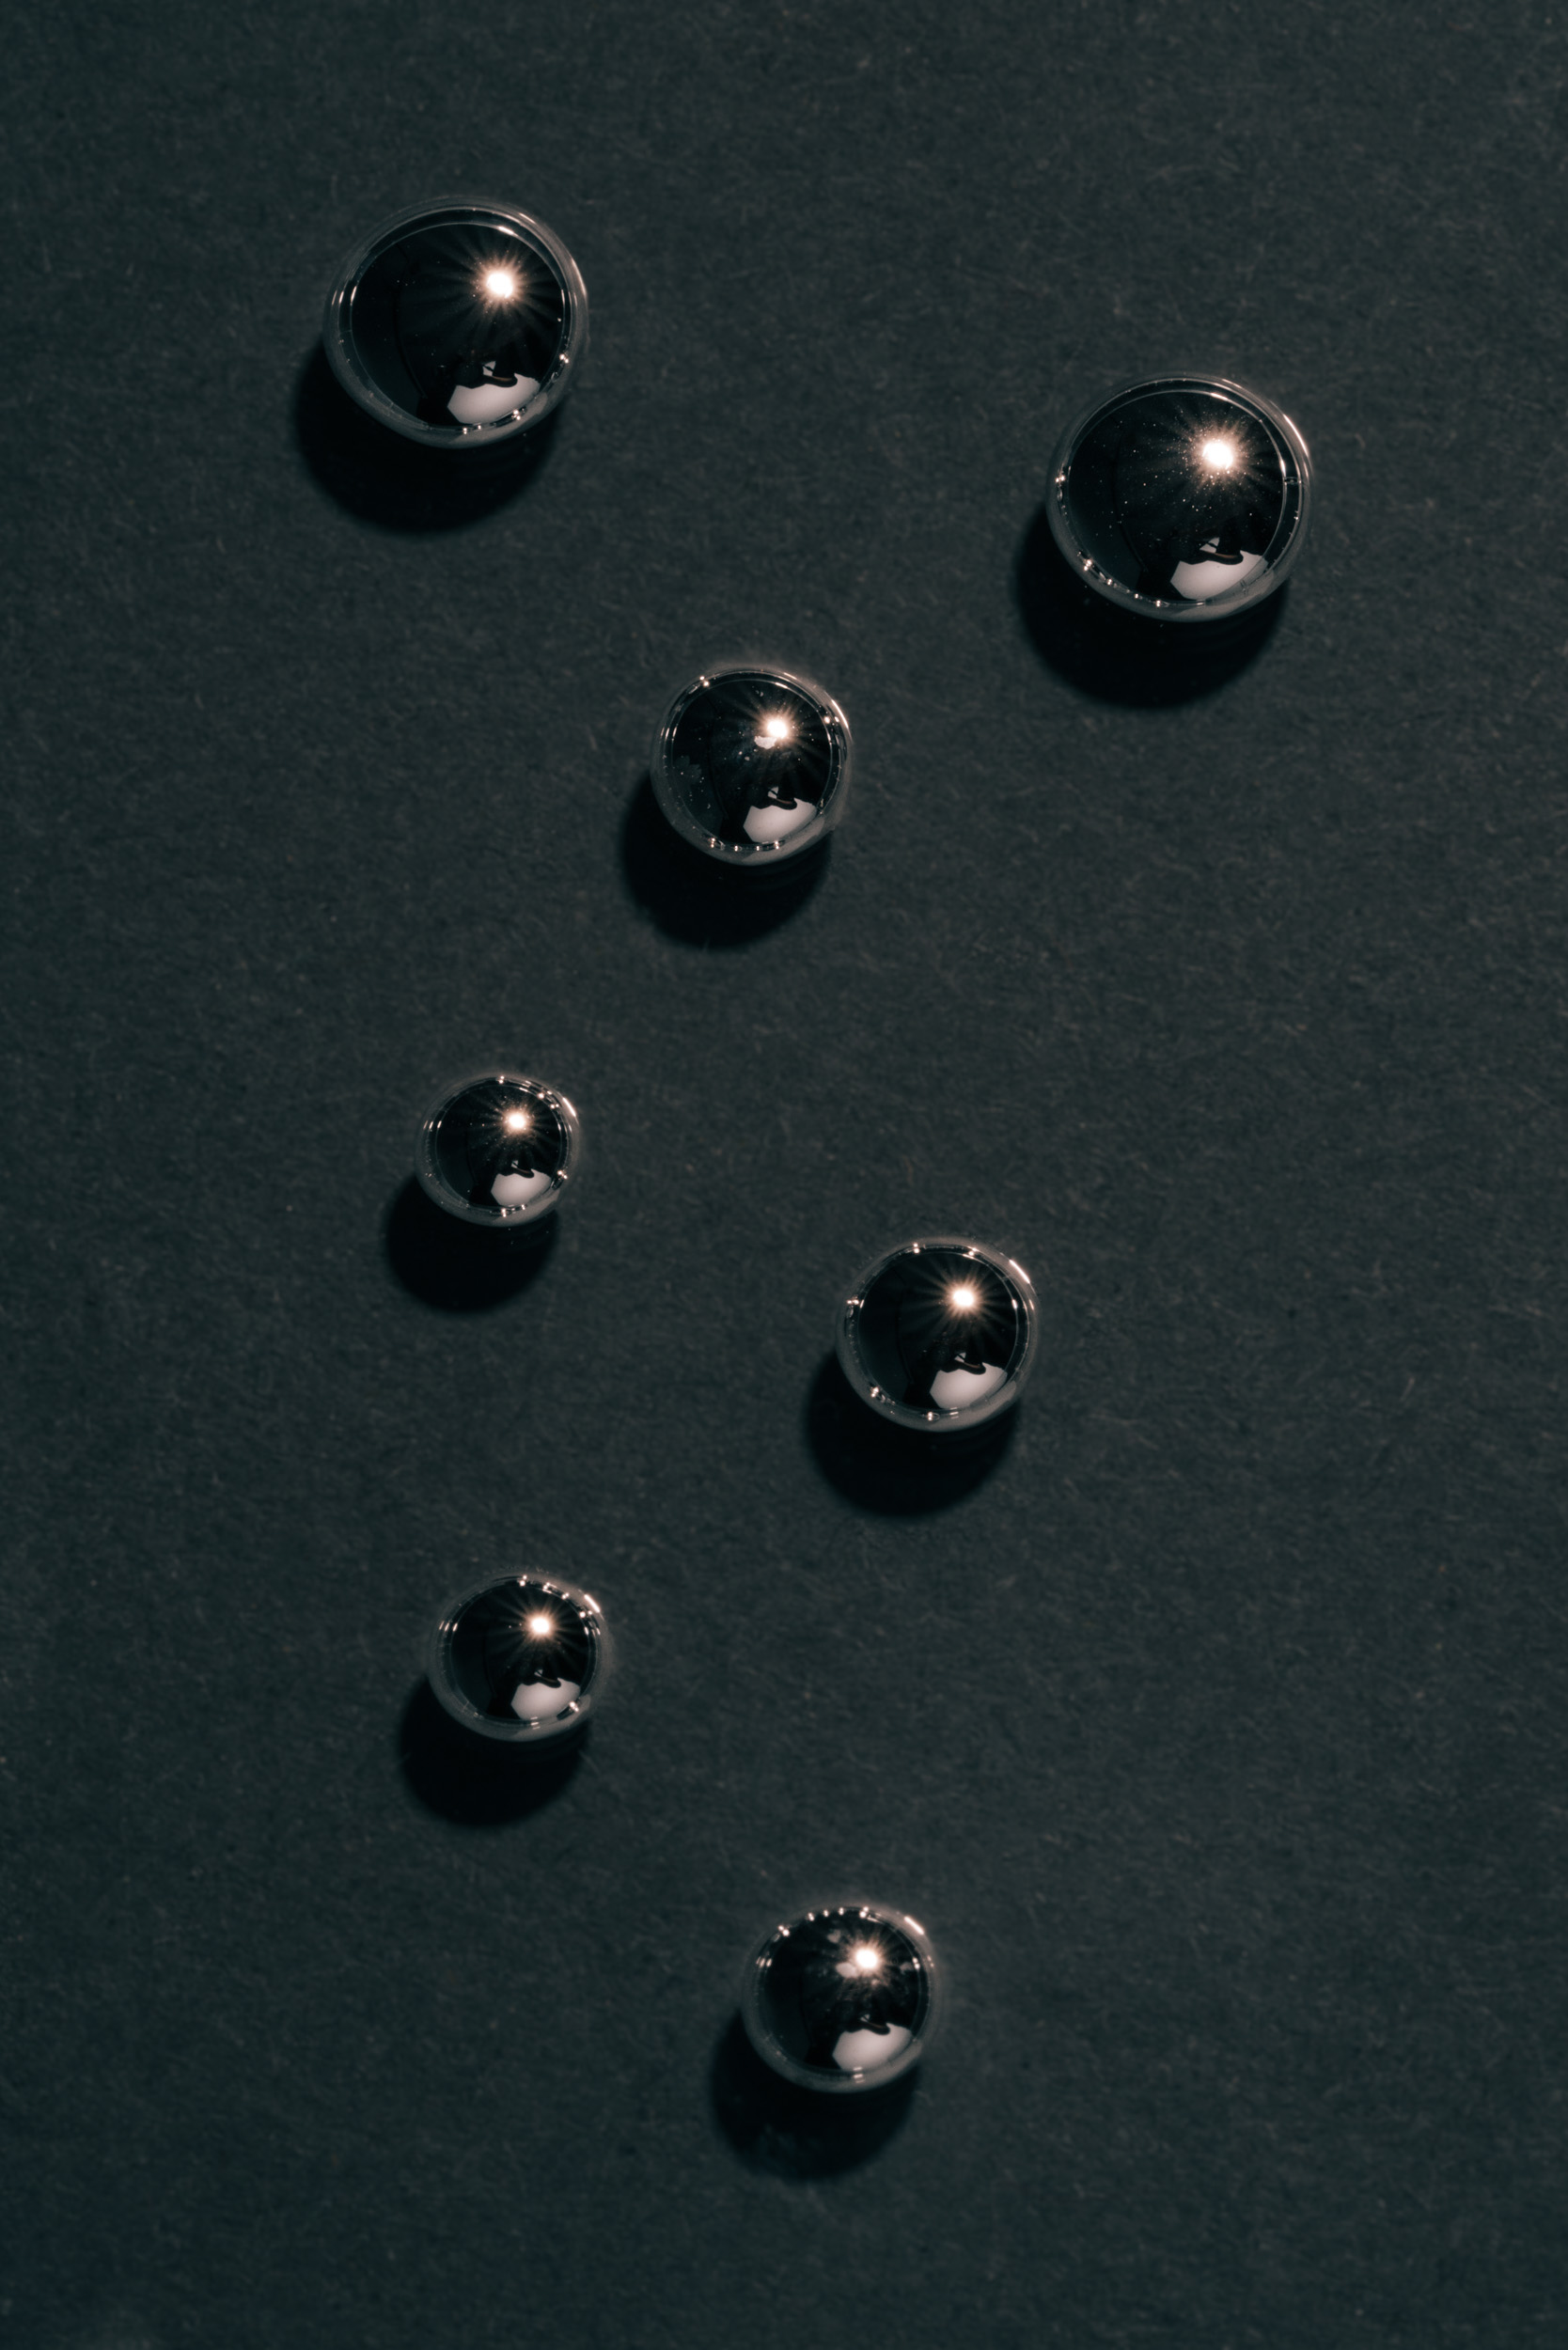 Beads of mercury on table